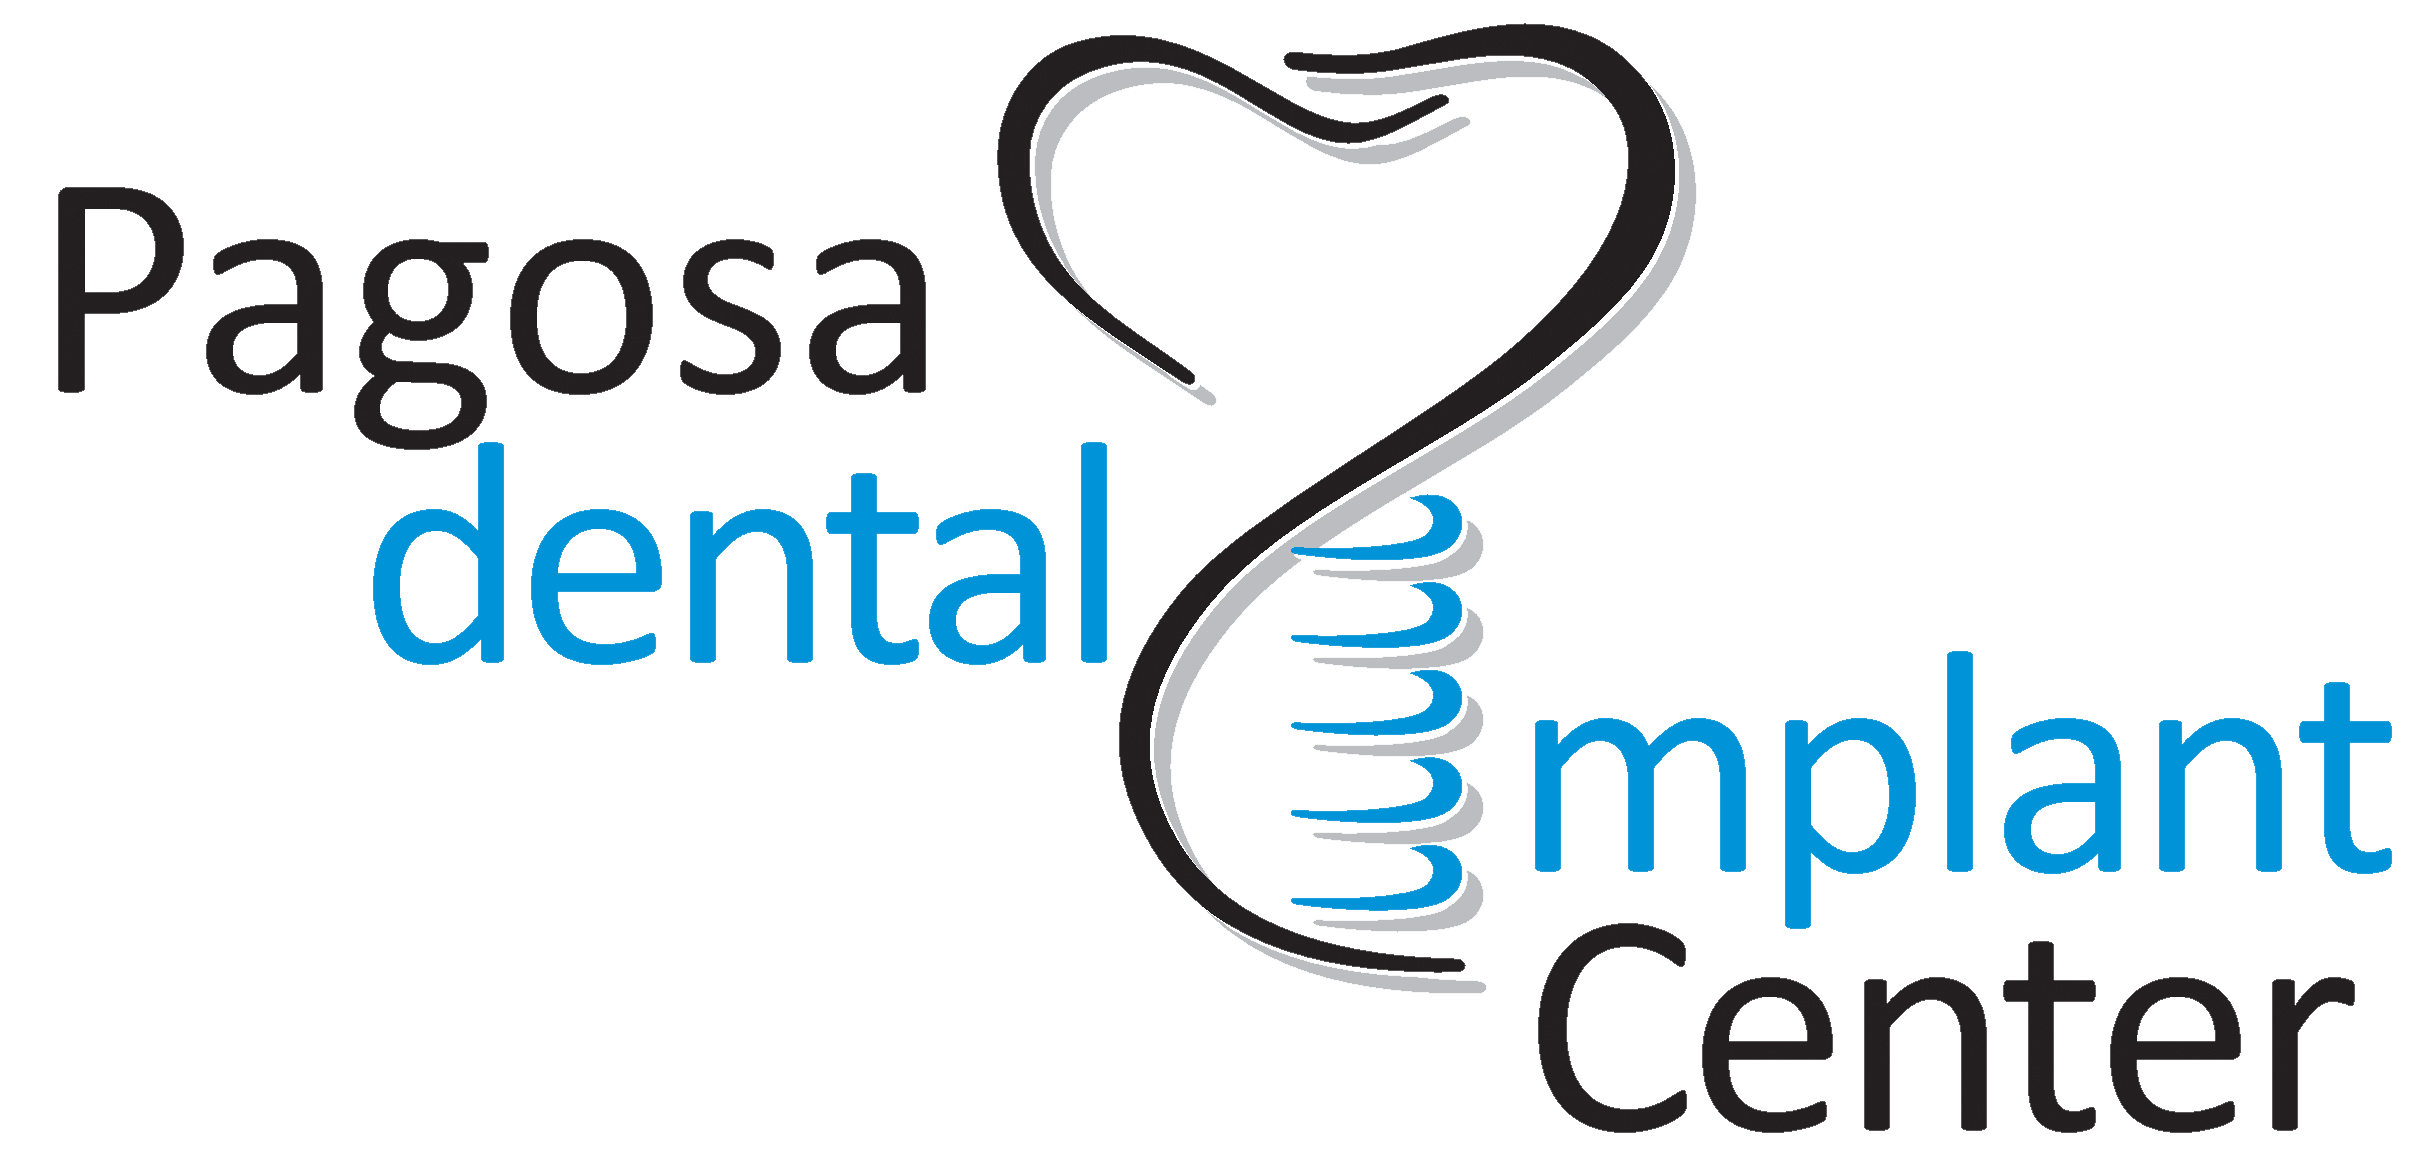 Pagosa dental implant center